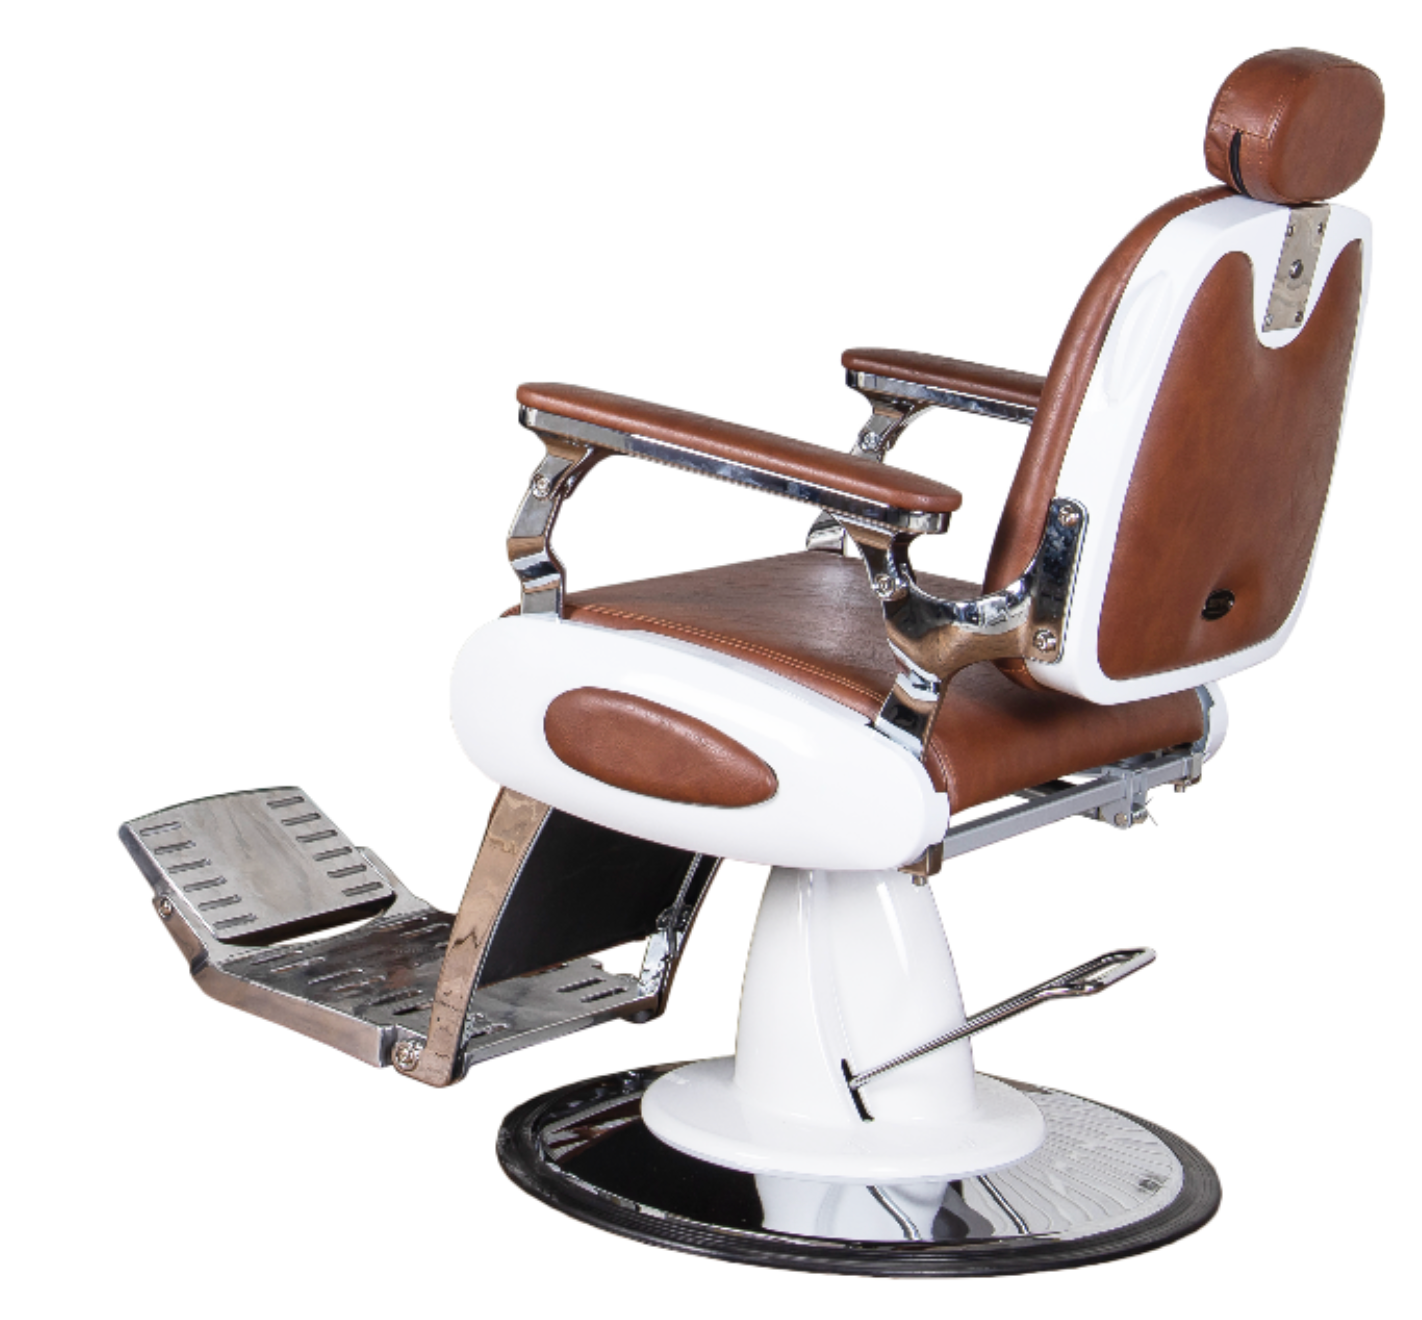 Depot Retro Barber Chair barberstol - White and Brown